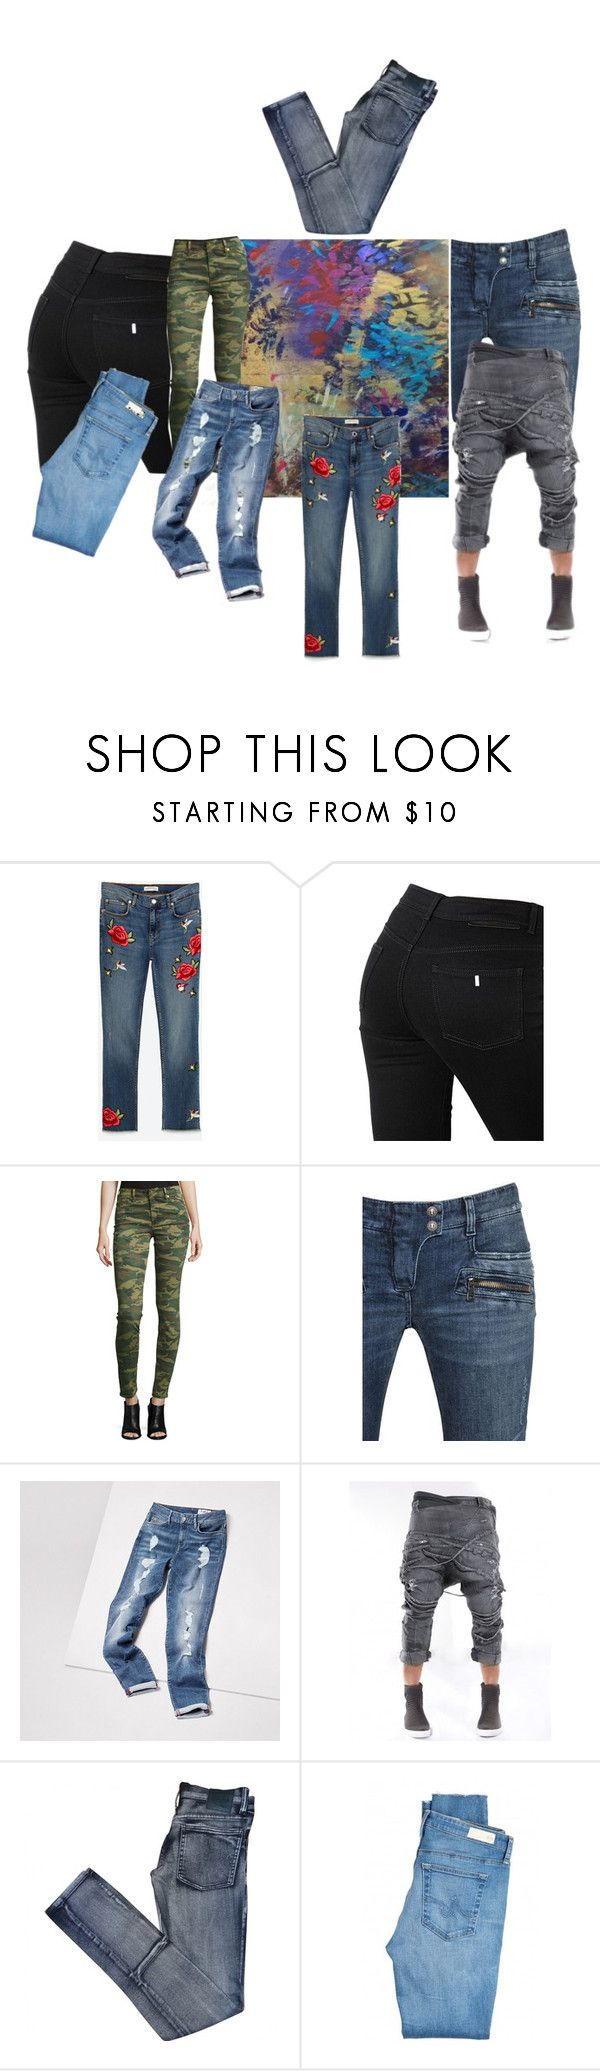 """""""Jeans it up!"""" by ester77zoe ❤ liked on Polyvore featuring STELLA McCARTNEY, True Religion, Balmain, Cheap Monday and AG Adriano Goldschmied"""